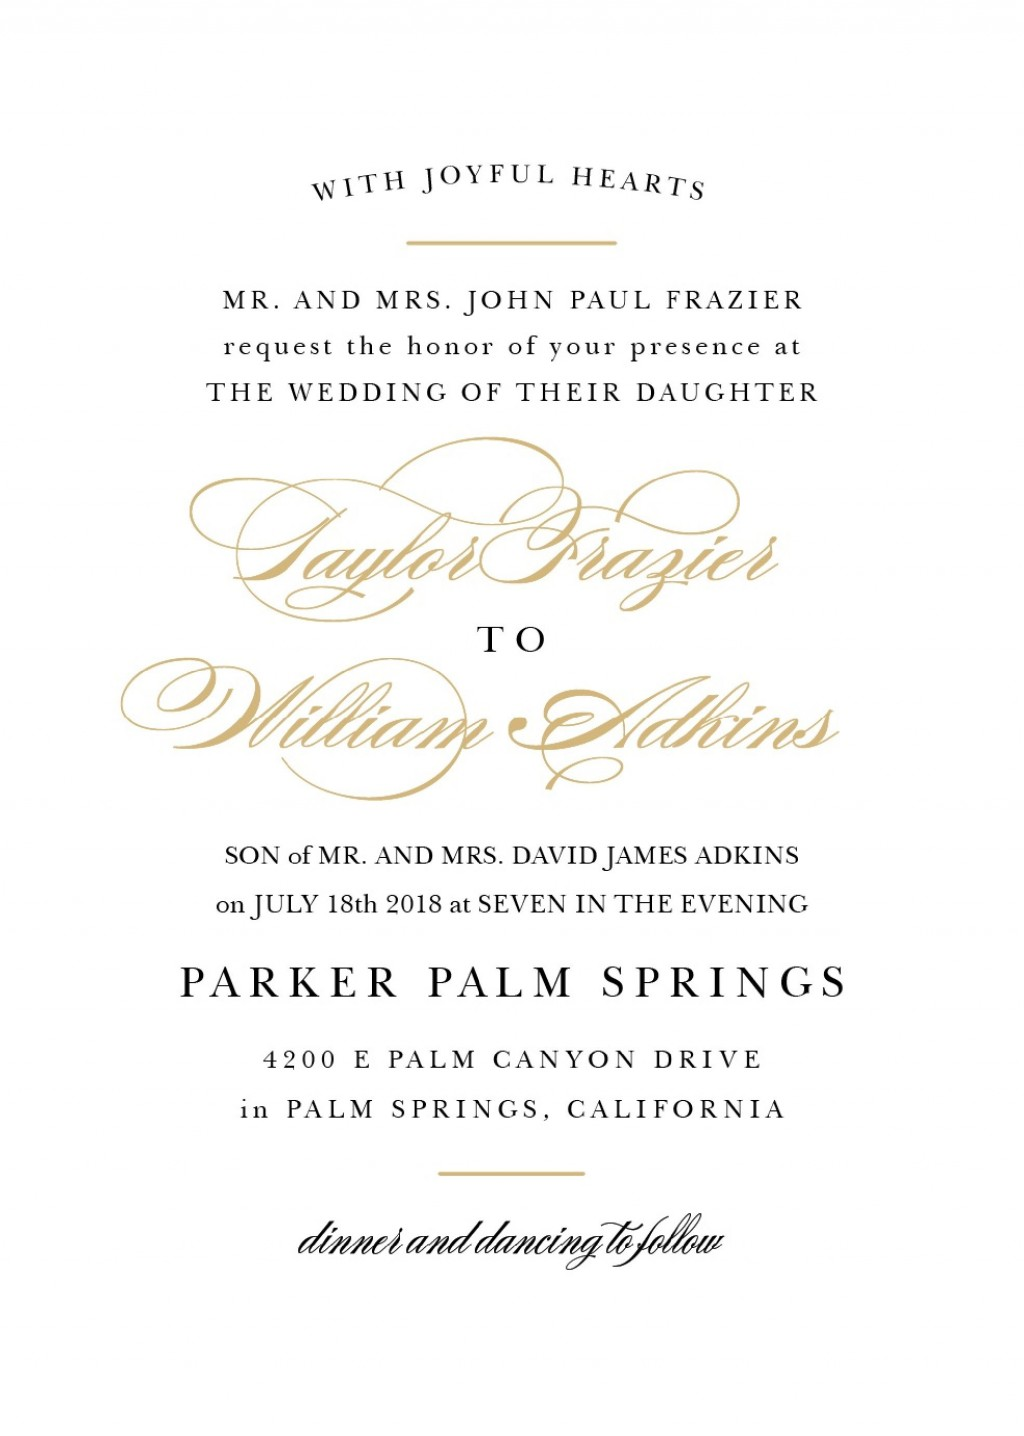 007 Shocking Wedding Invite Wording Template Highest Clarity  Templates Chinese Invitation Microsoft Word From Bride And Groom Example InvitingLarge